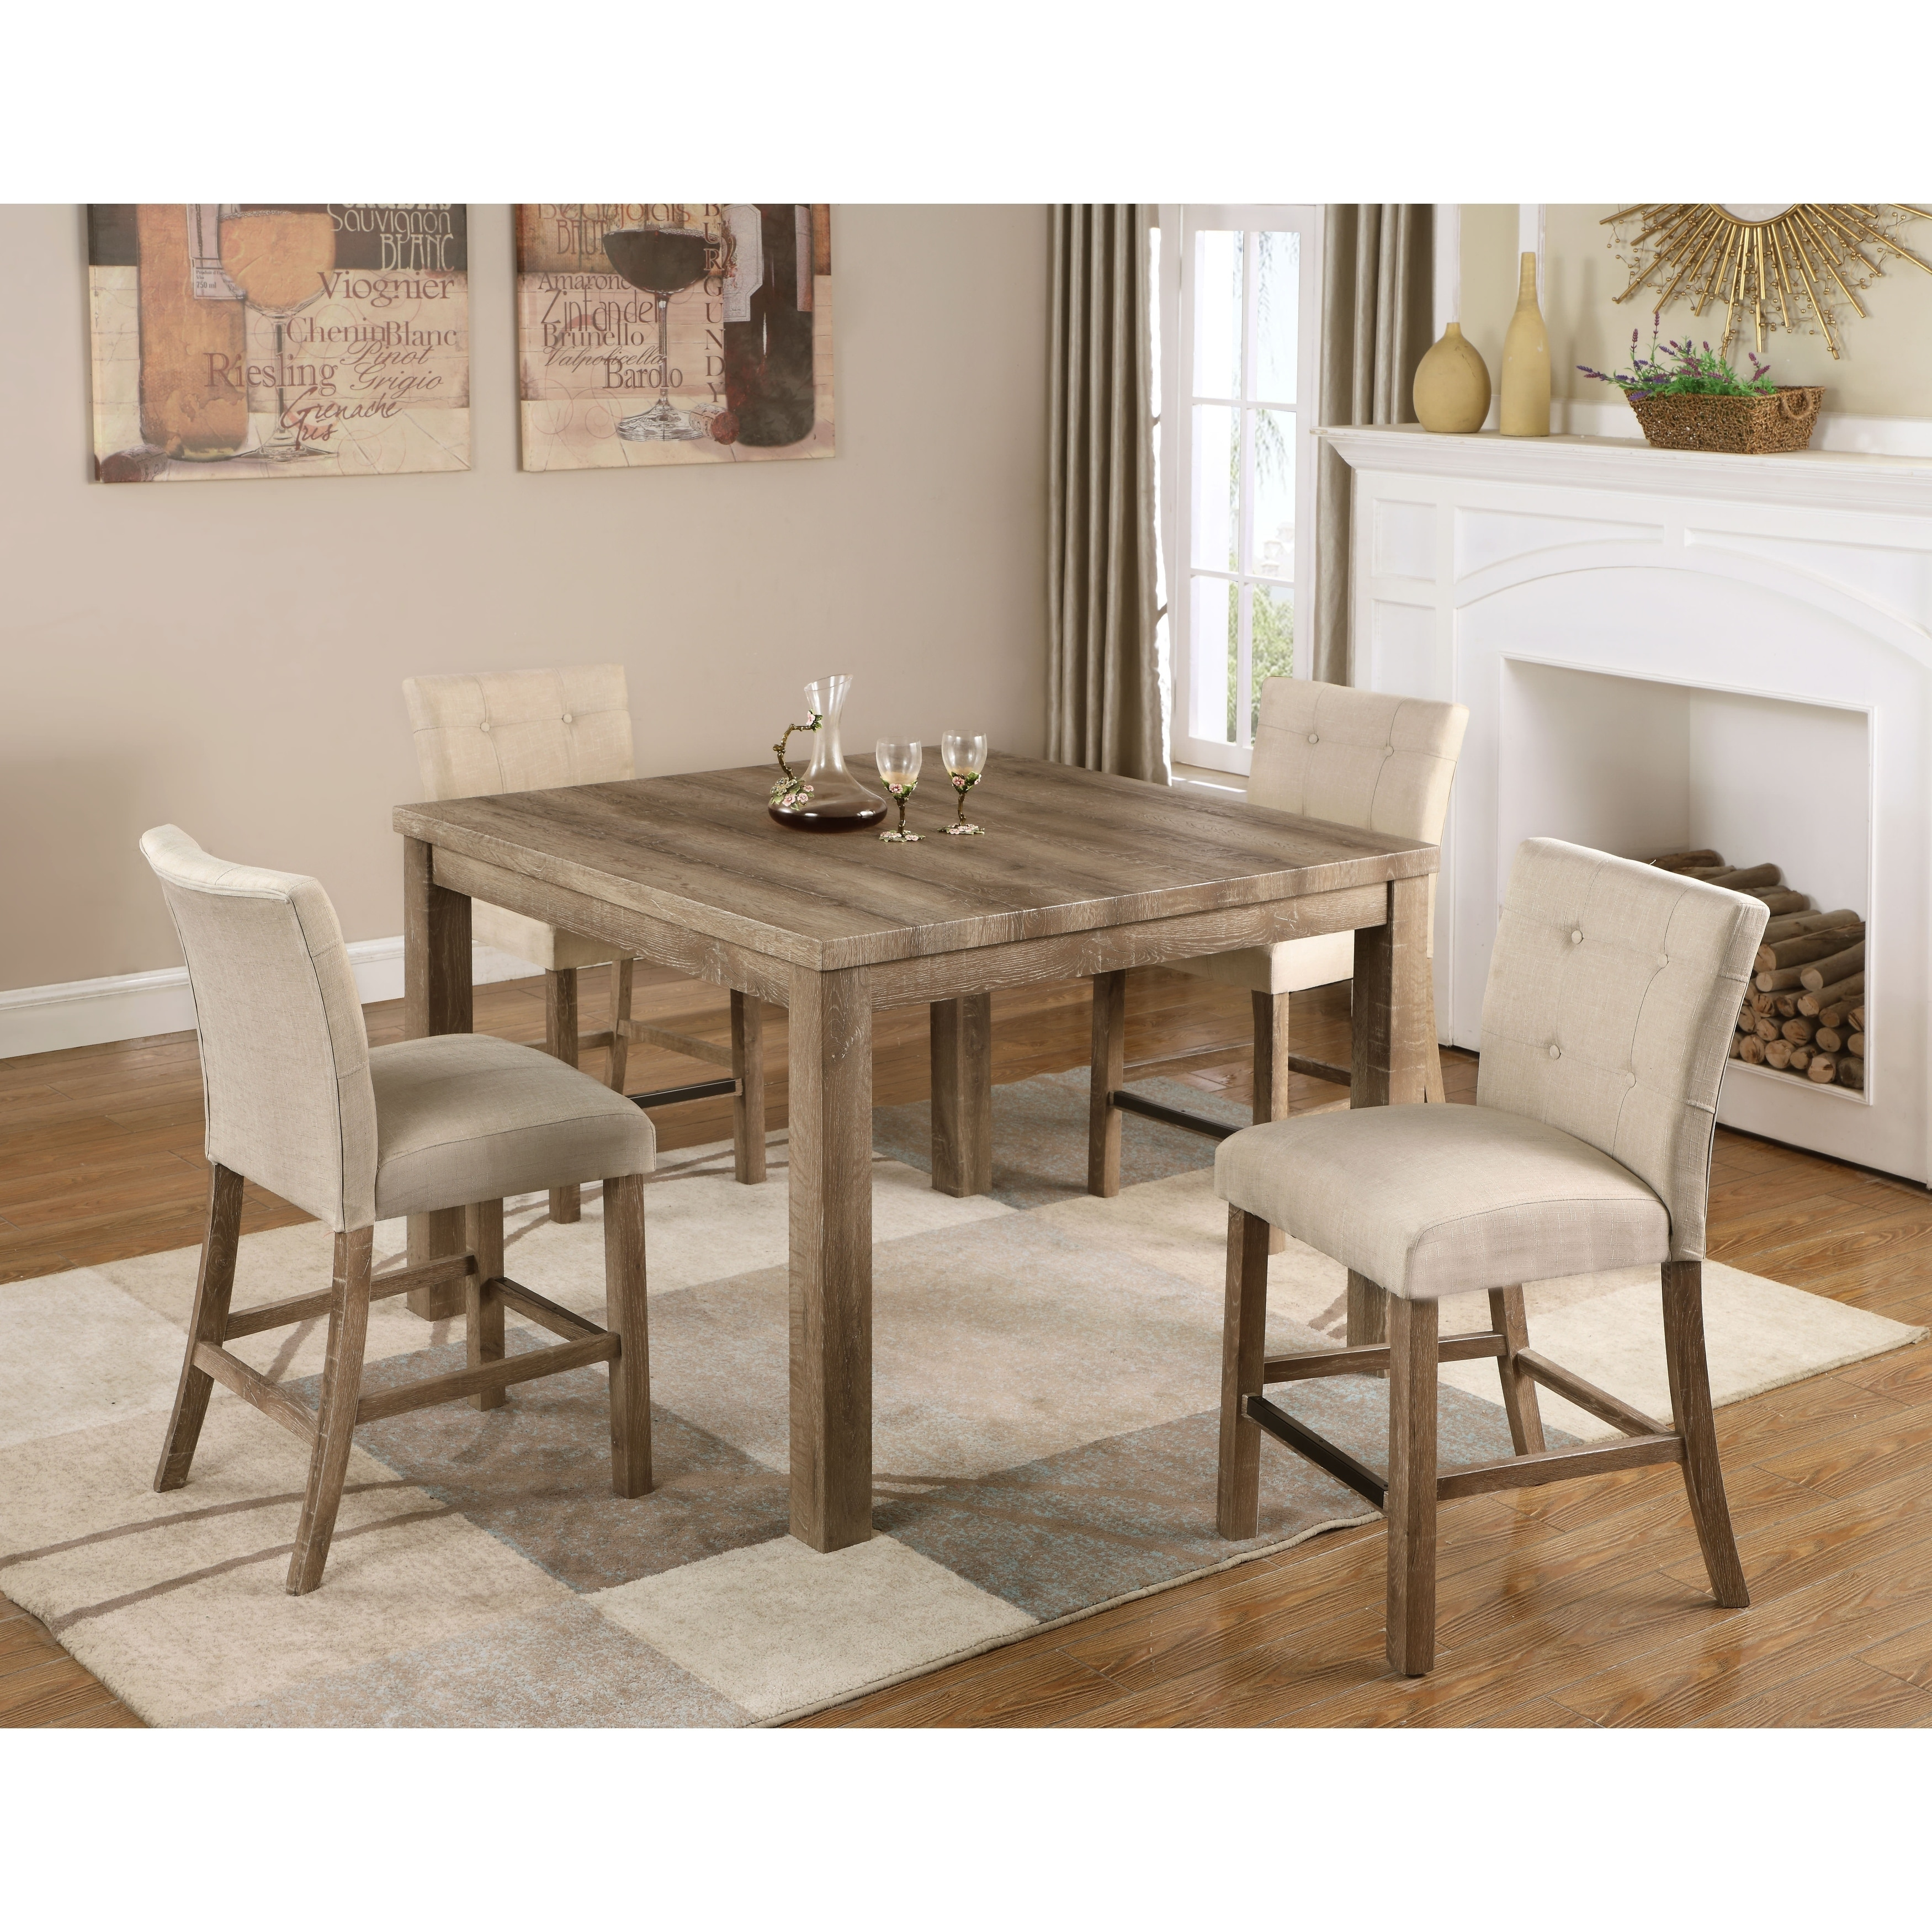 Best Master Furniture Light Oak Wood Square Counter Height Table   Free  Shipping Today   Overstock   28028180